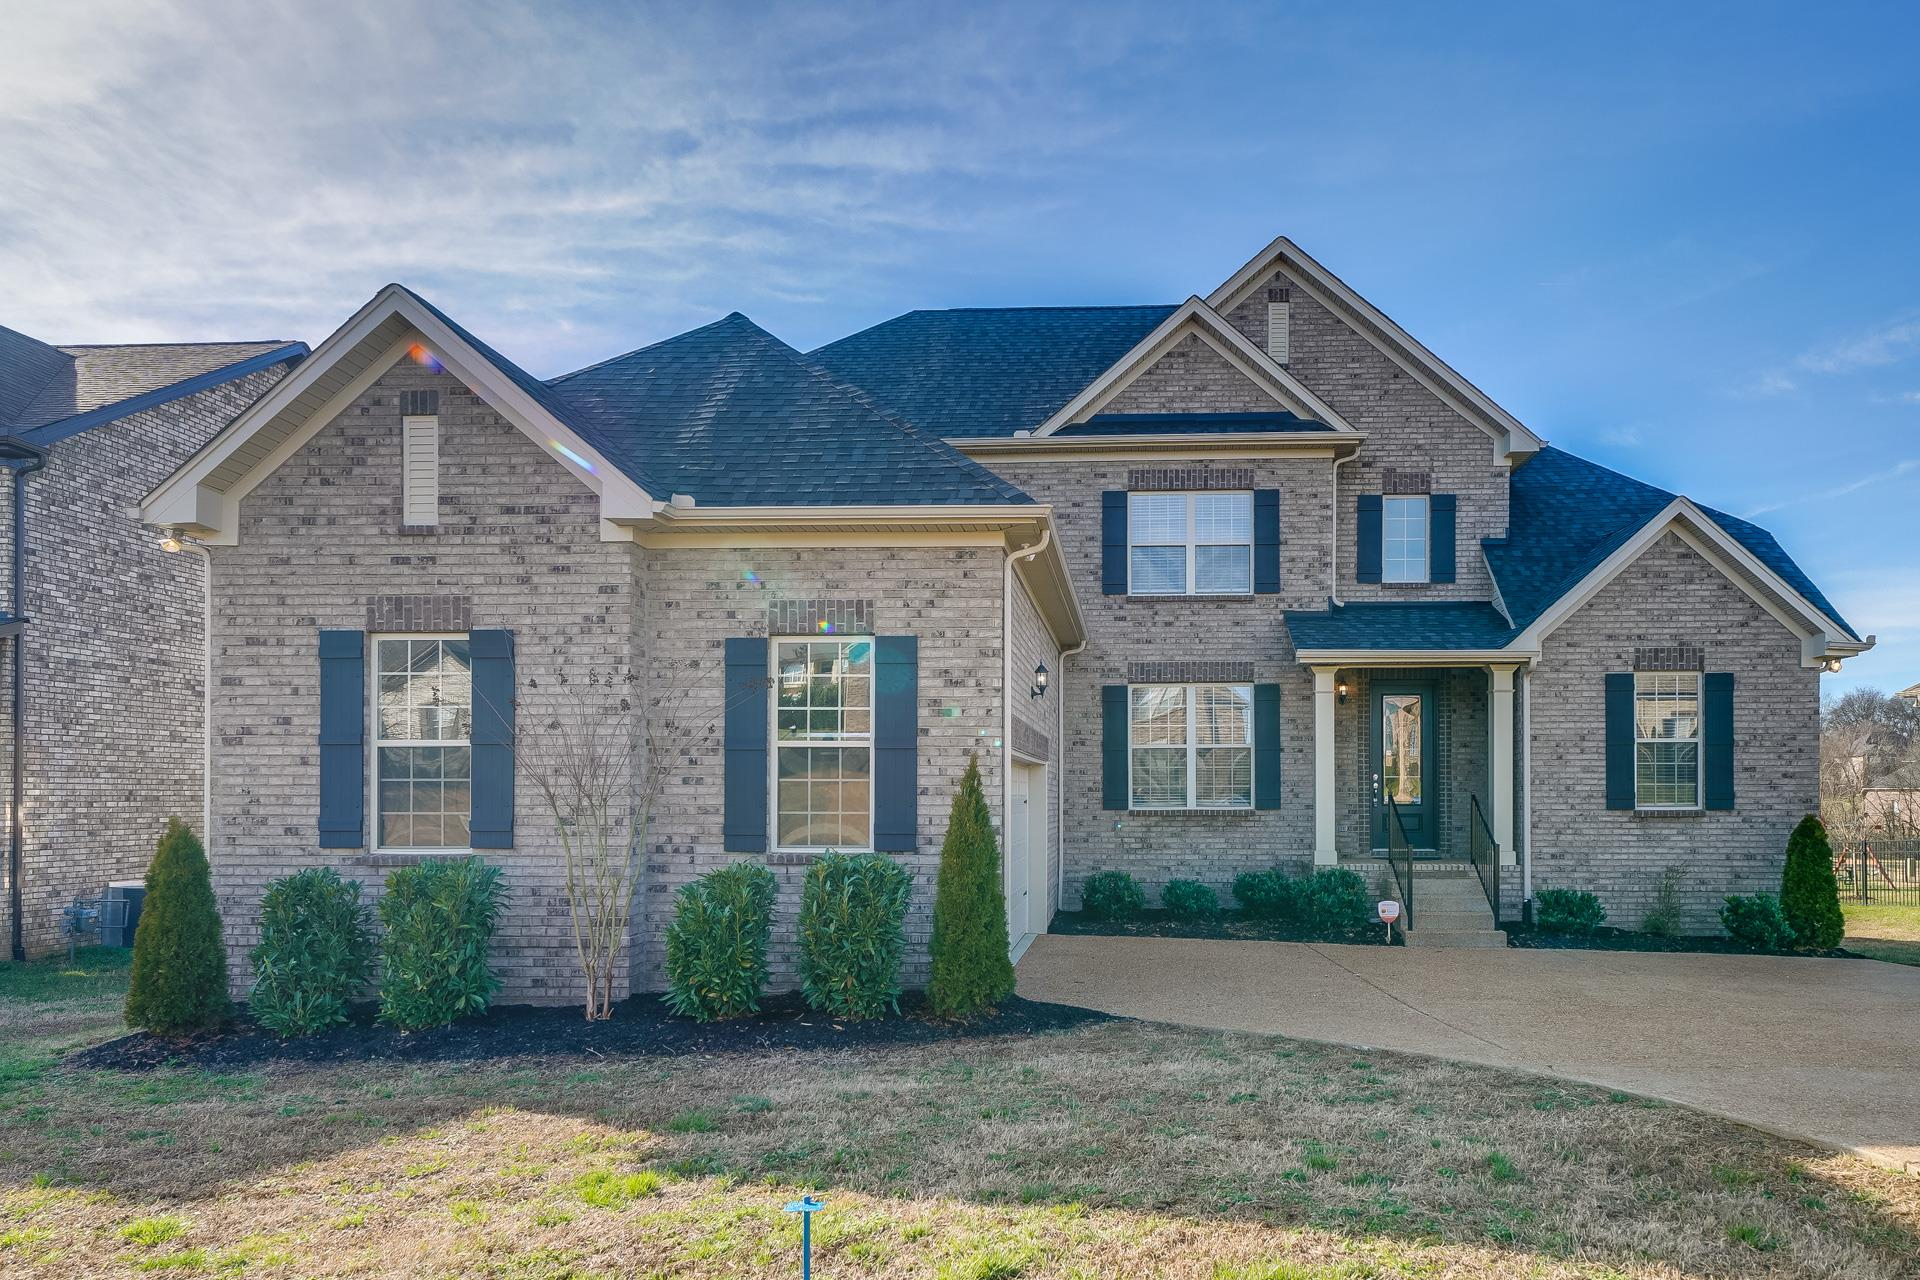 1086 Lillian Ln 37066 - One of Gallatin Homes for Sale